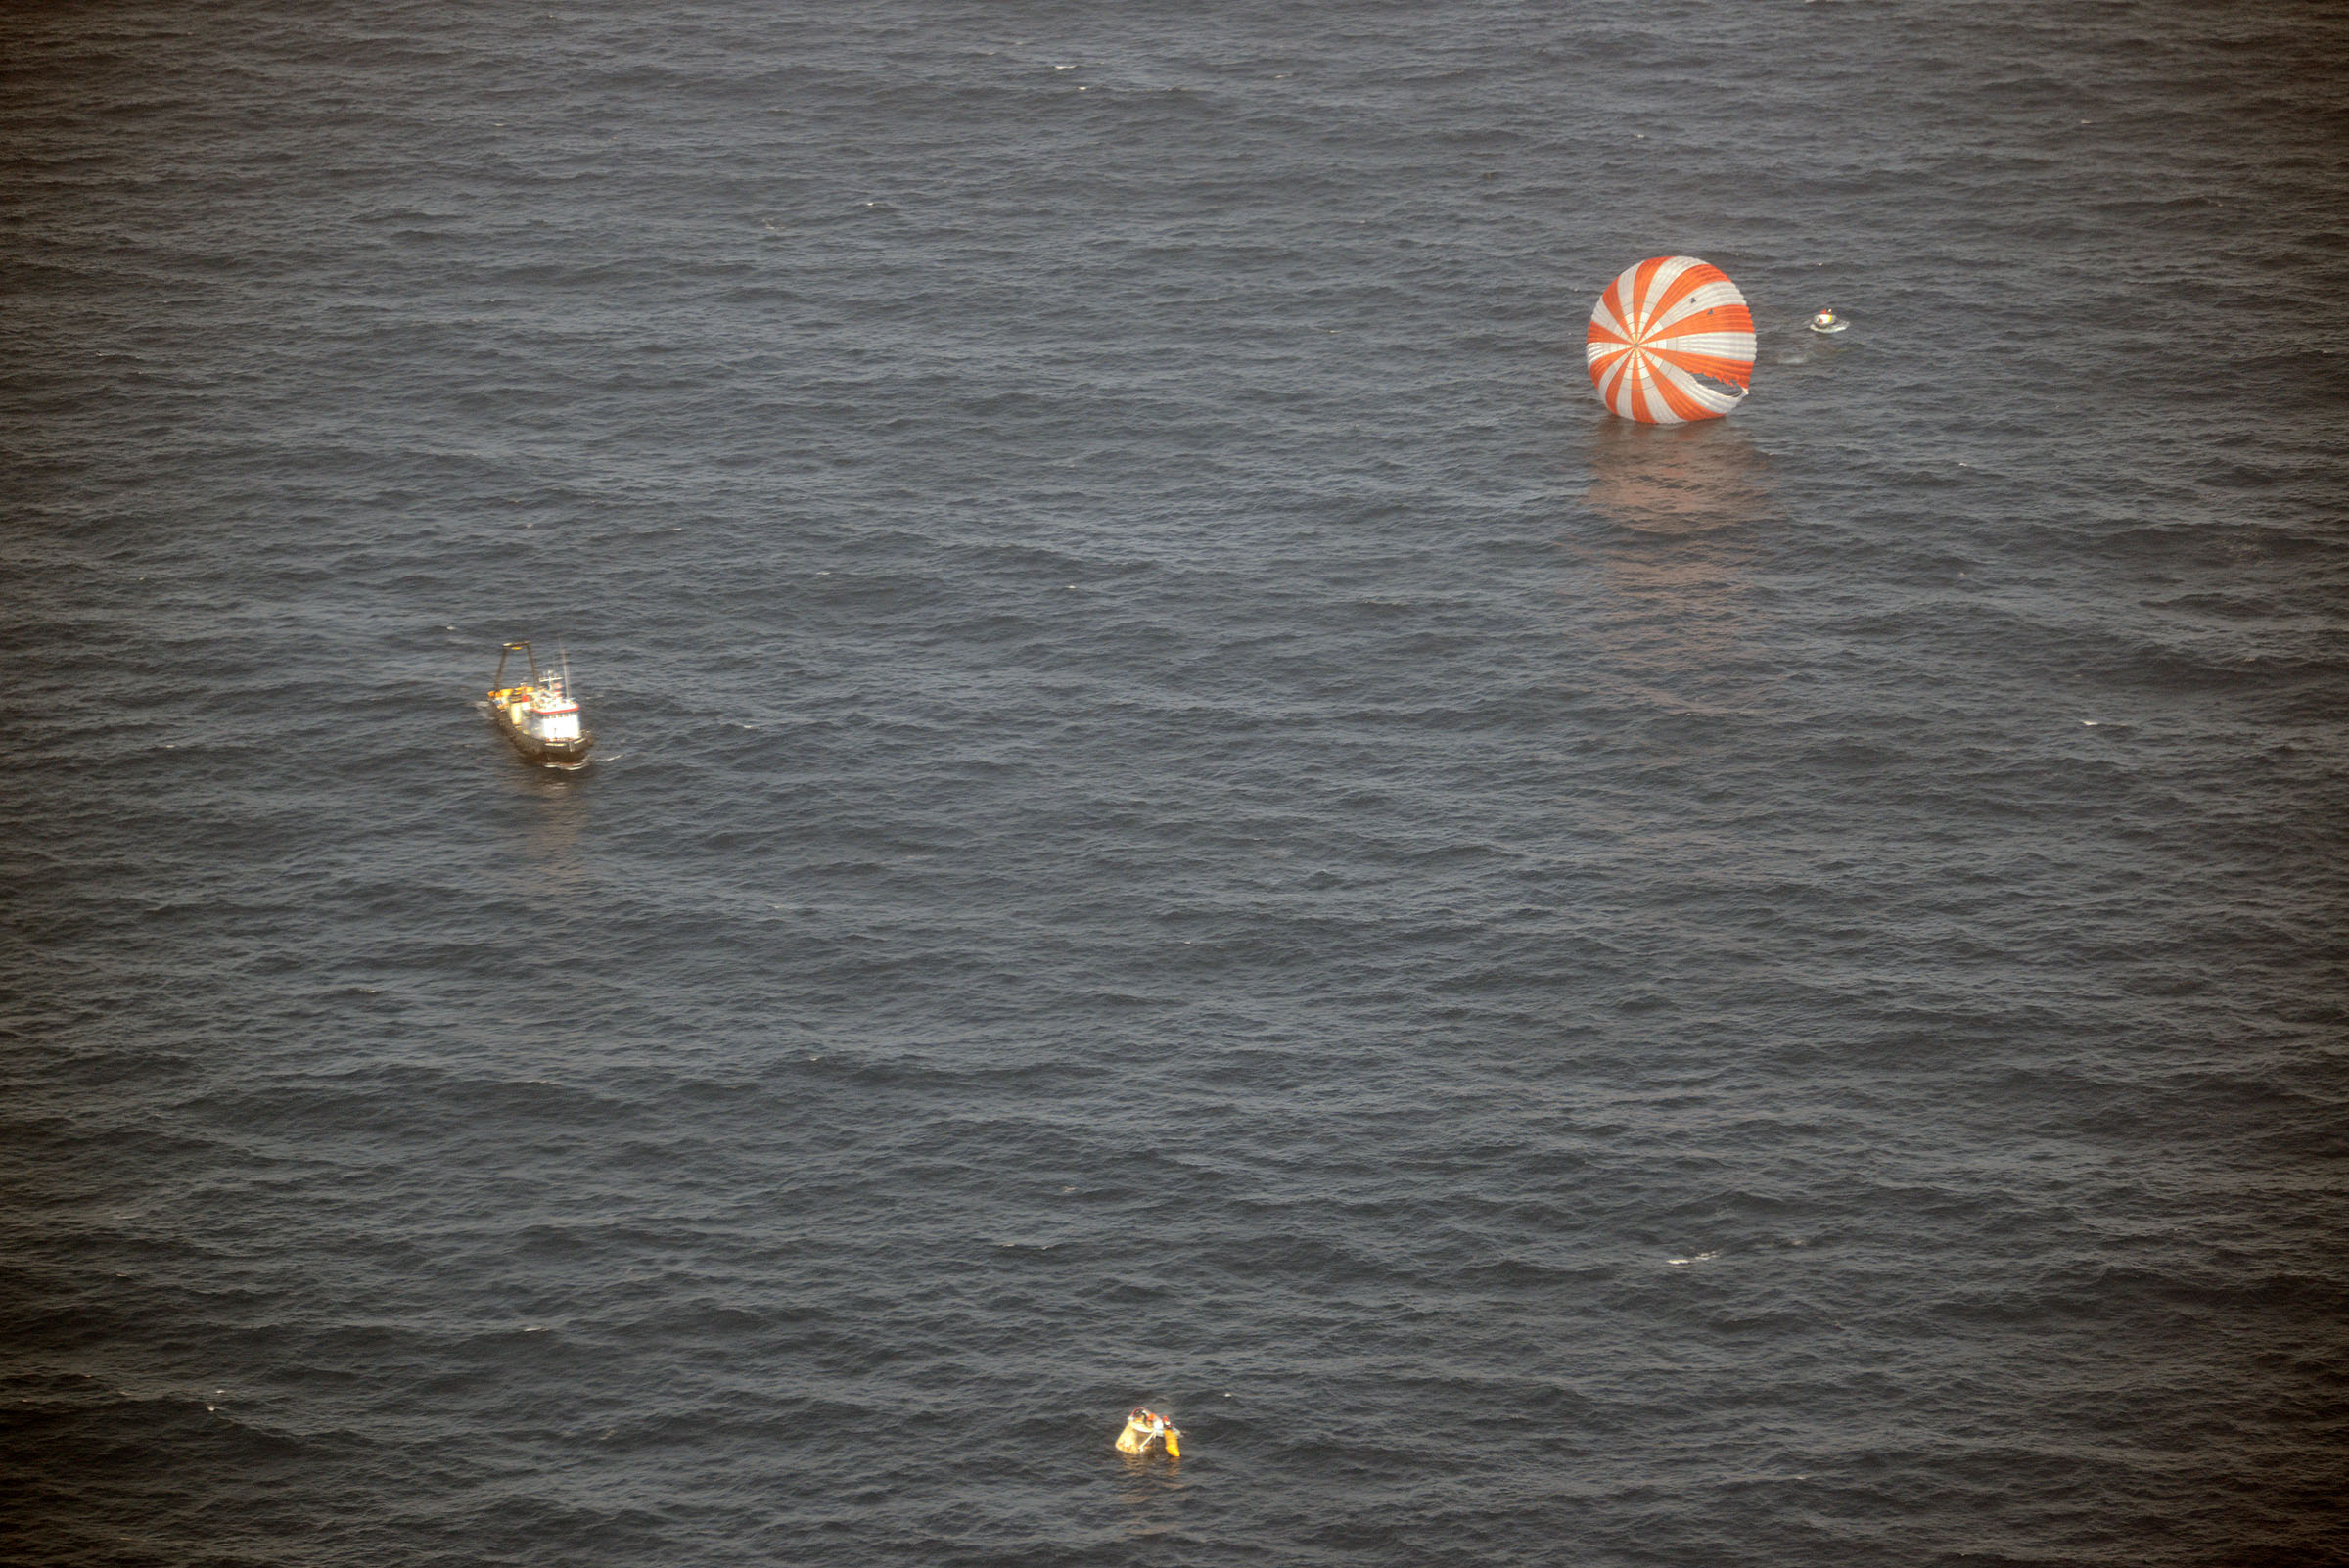 Recovery Boats Approach Dragon Capsule